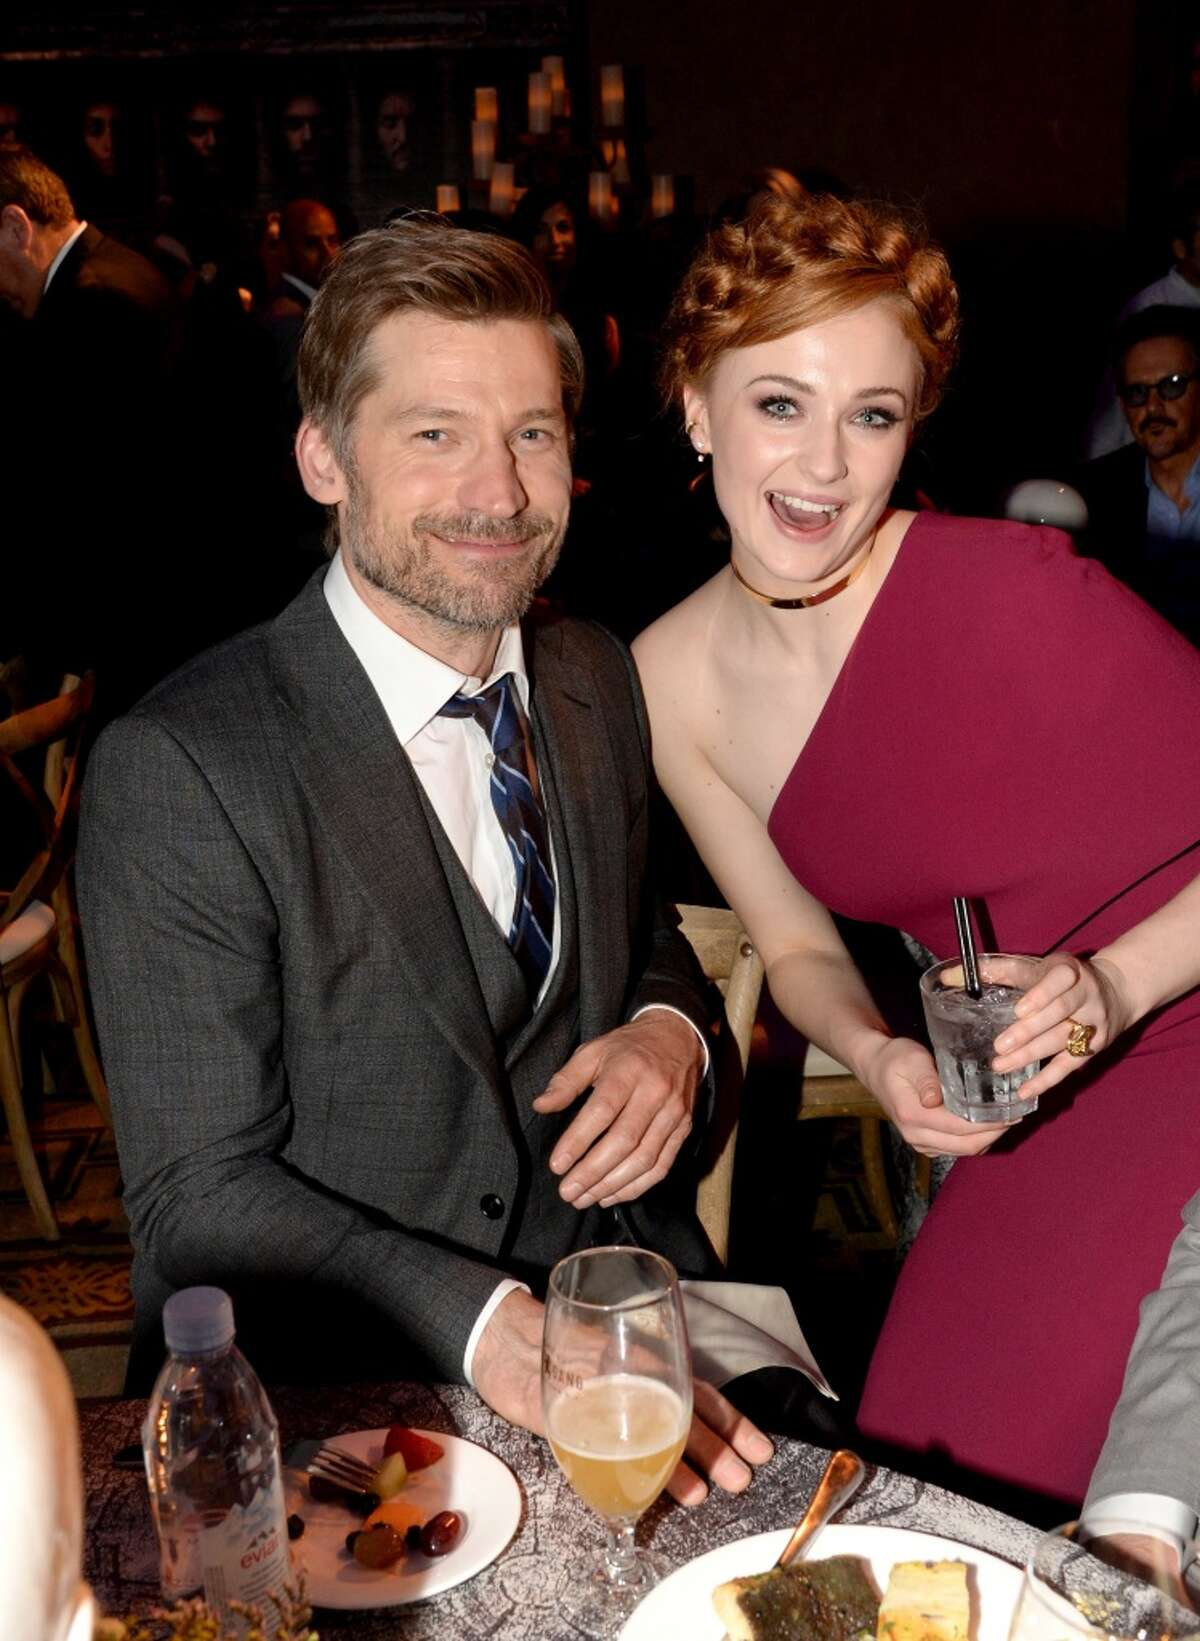 Actors Nikolaj Coster-Waldau (left) and Sophie Turner attend the after-party at the premiere for the sixth season of HBO's